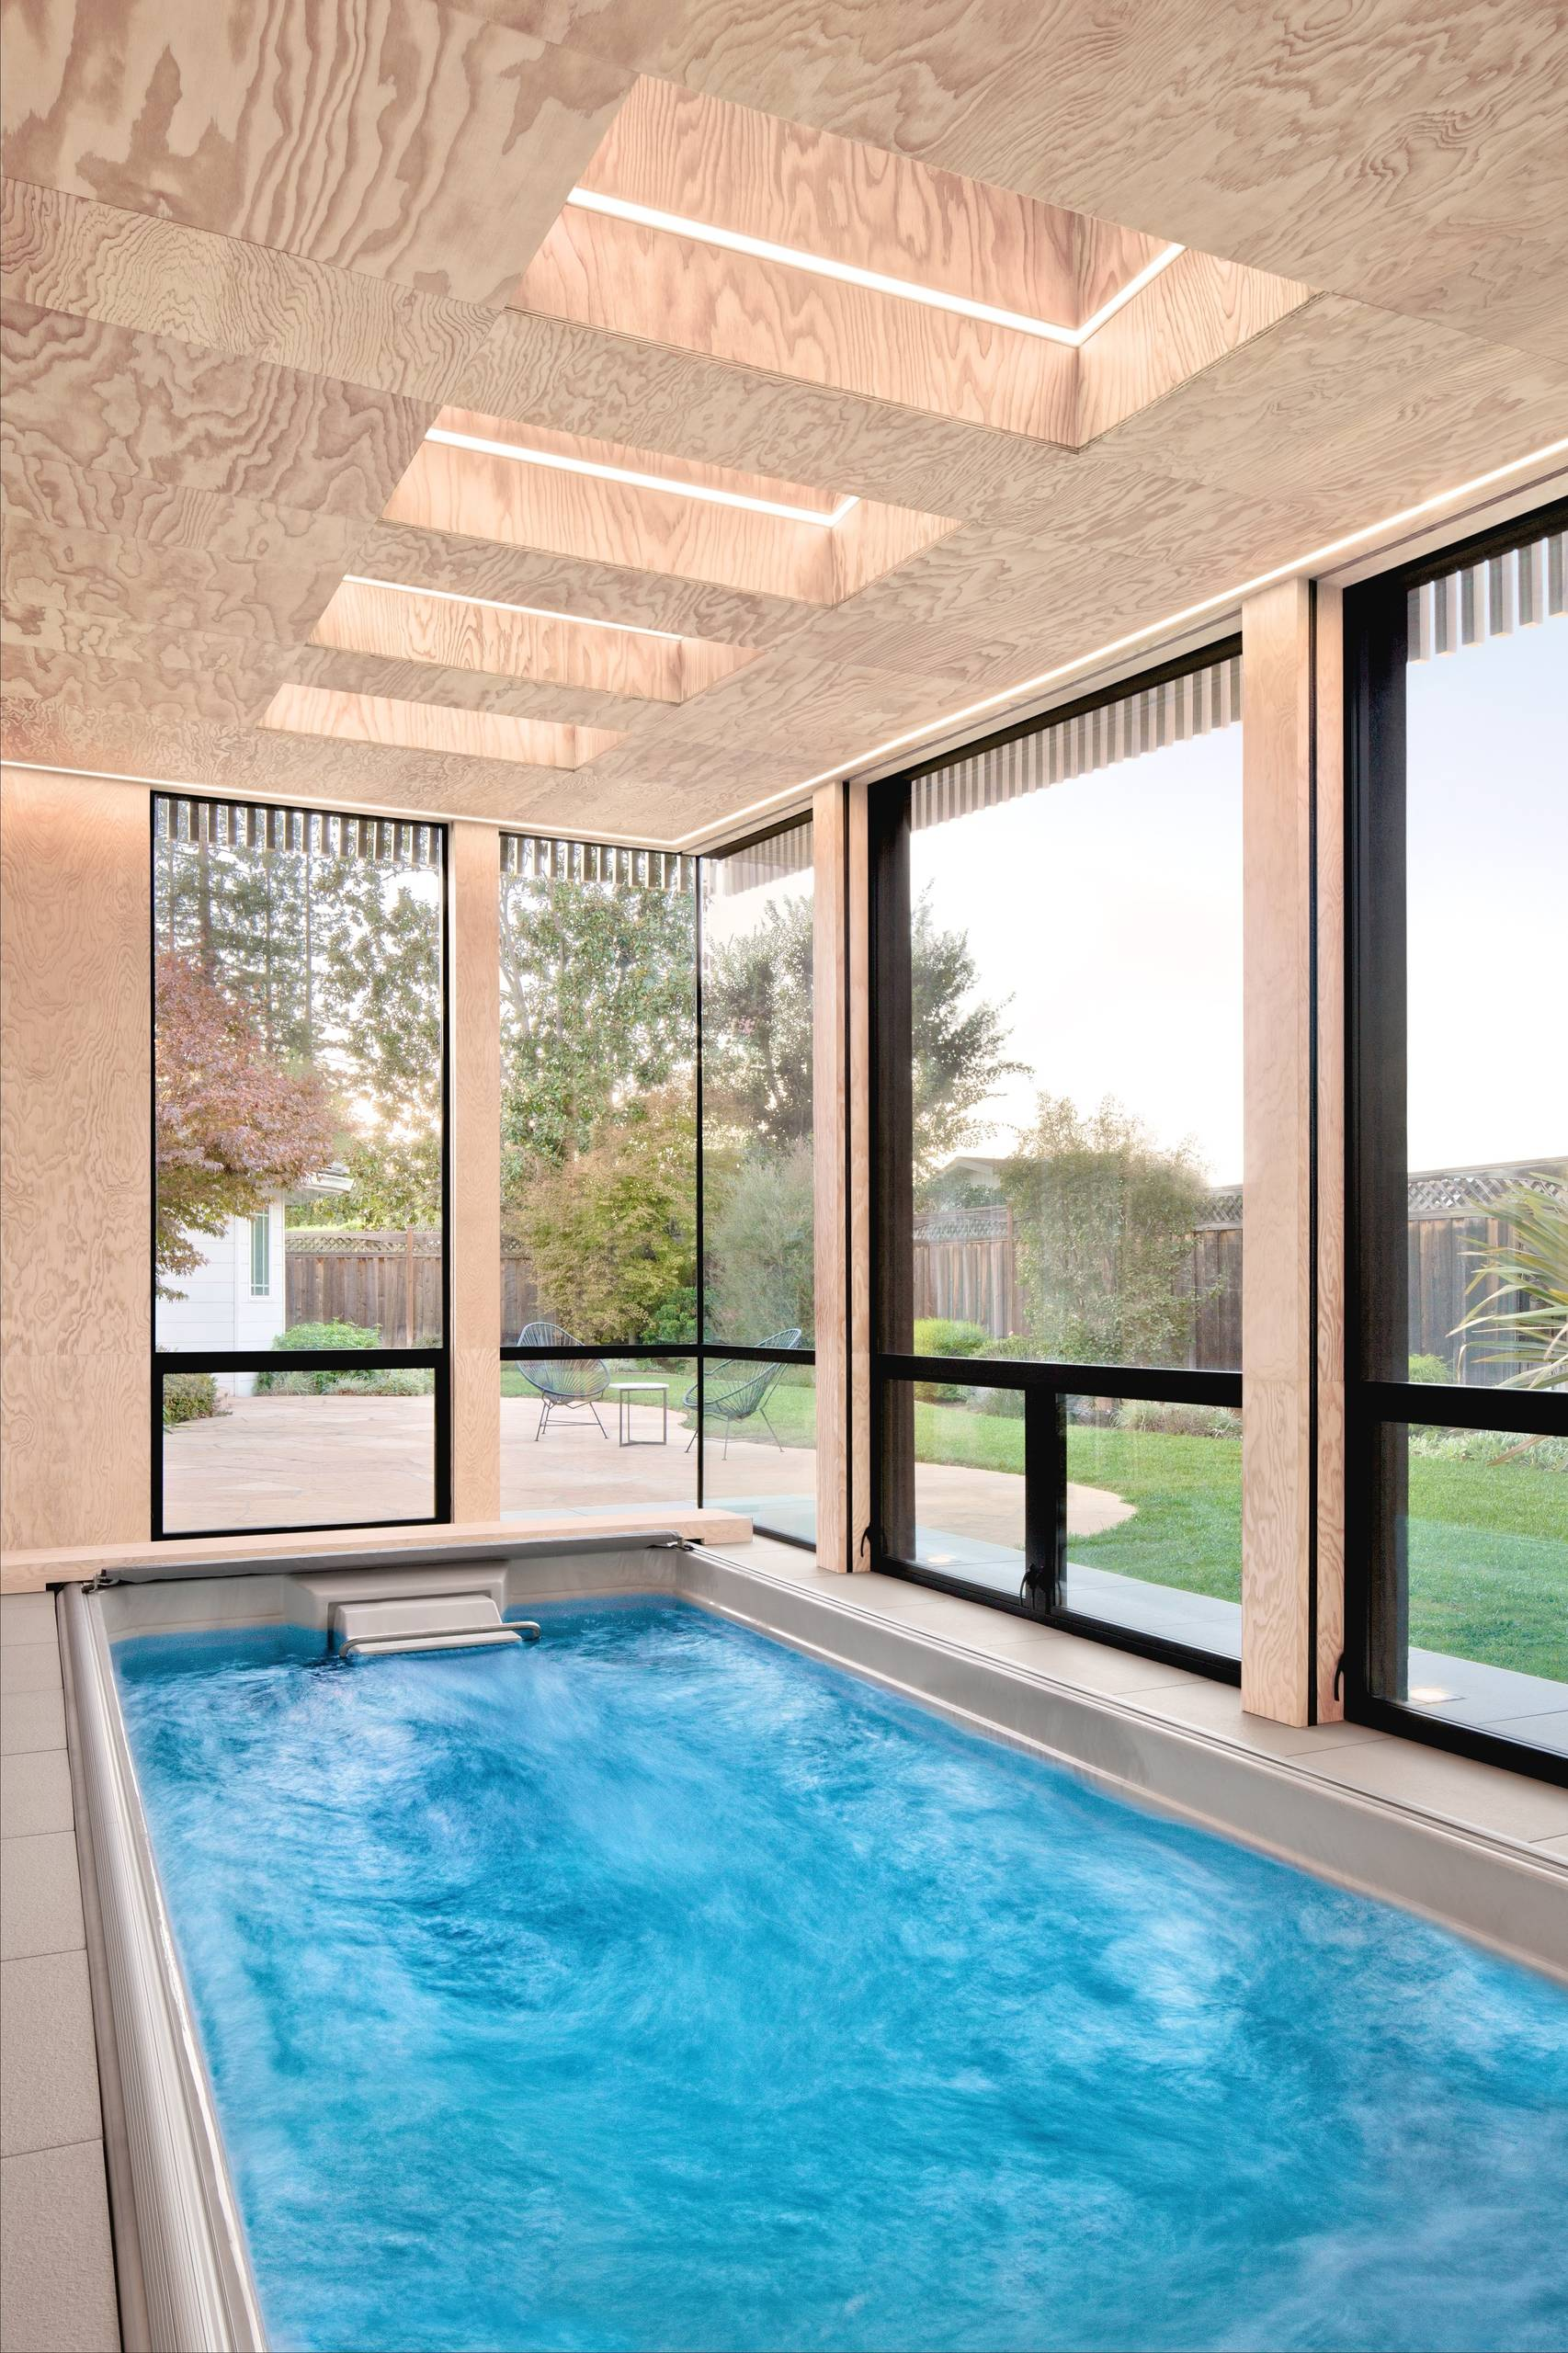 75 Beautiful Small Indoor Pool Pictures Ideas March 2021 Houzz